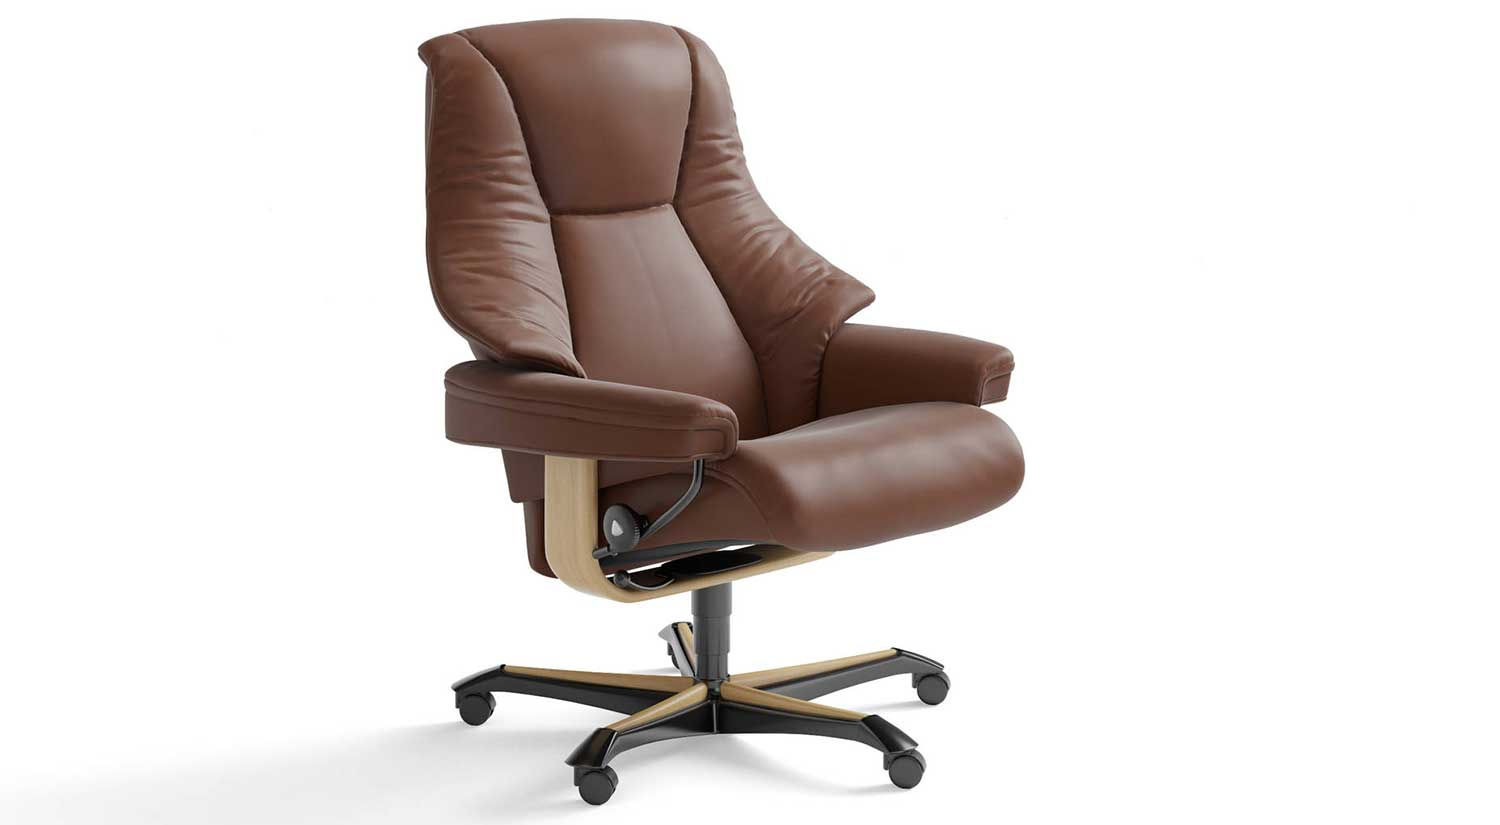 Live Stressless Office Chair